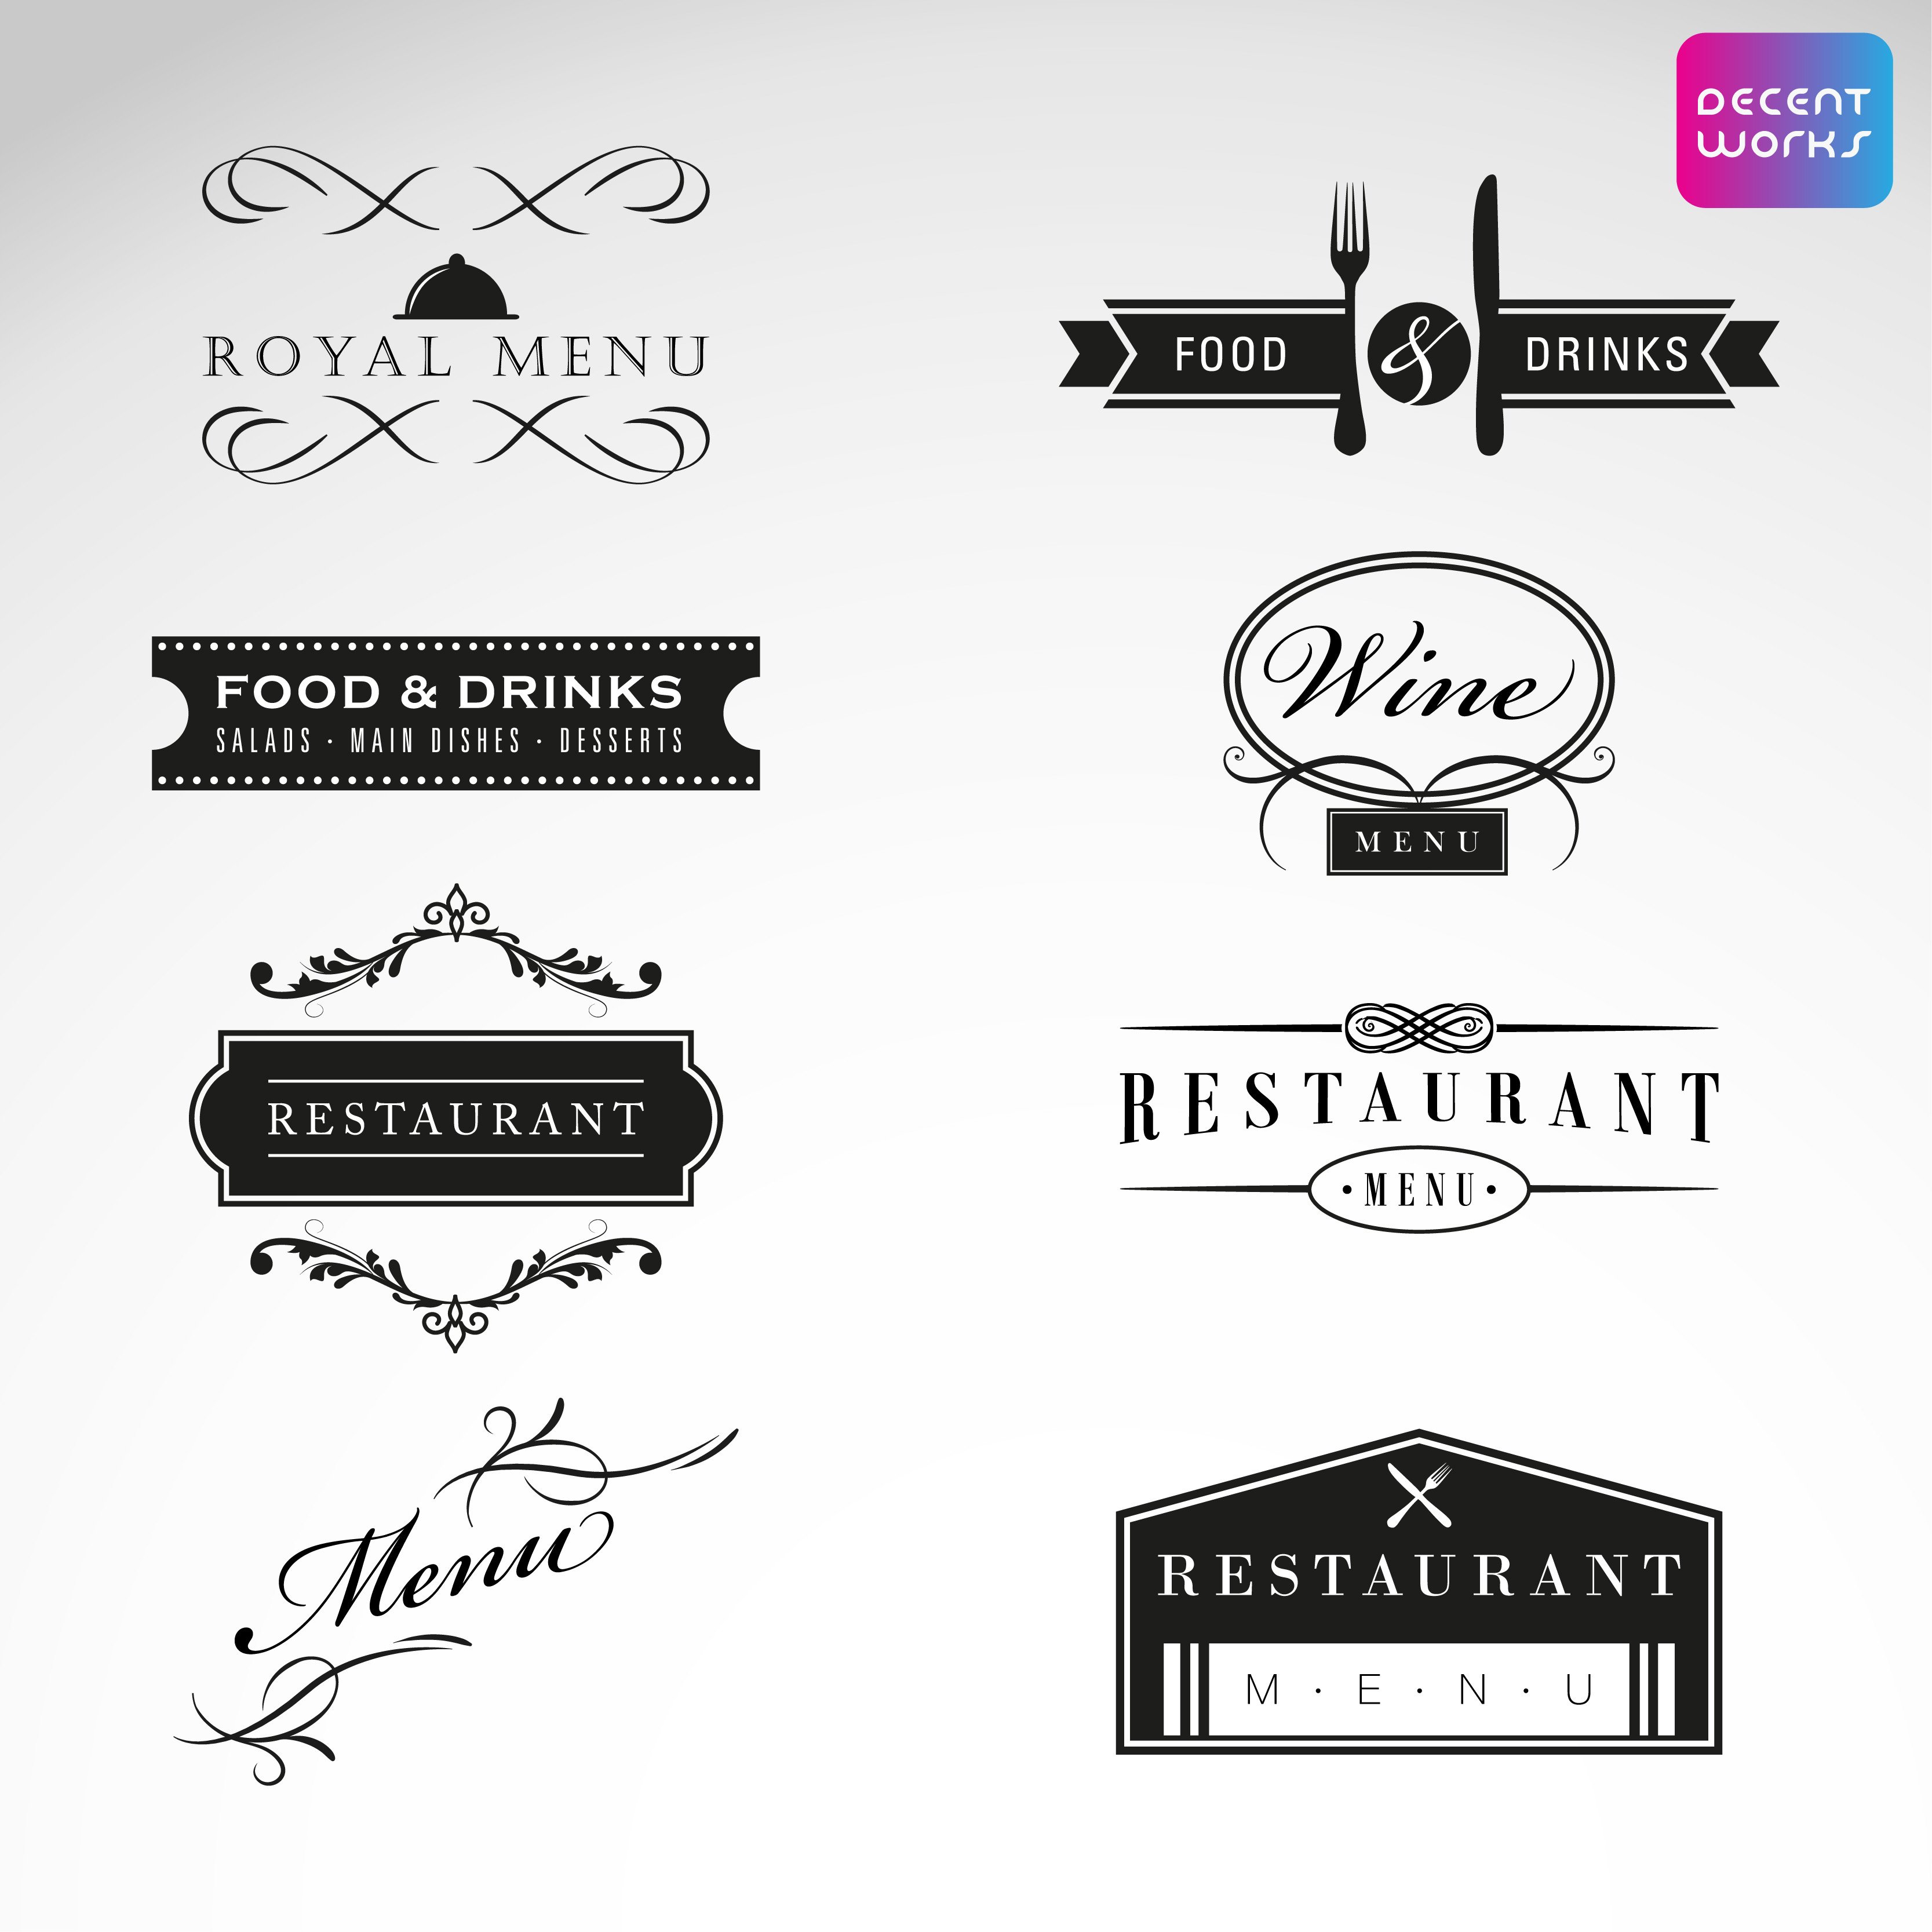 4 logo with business card High quality & Transparent background in 24 hours,  Free vector files,  unlimited Revesion.